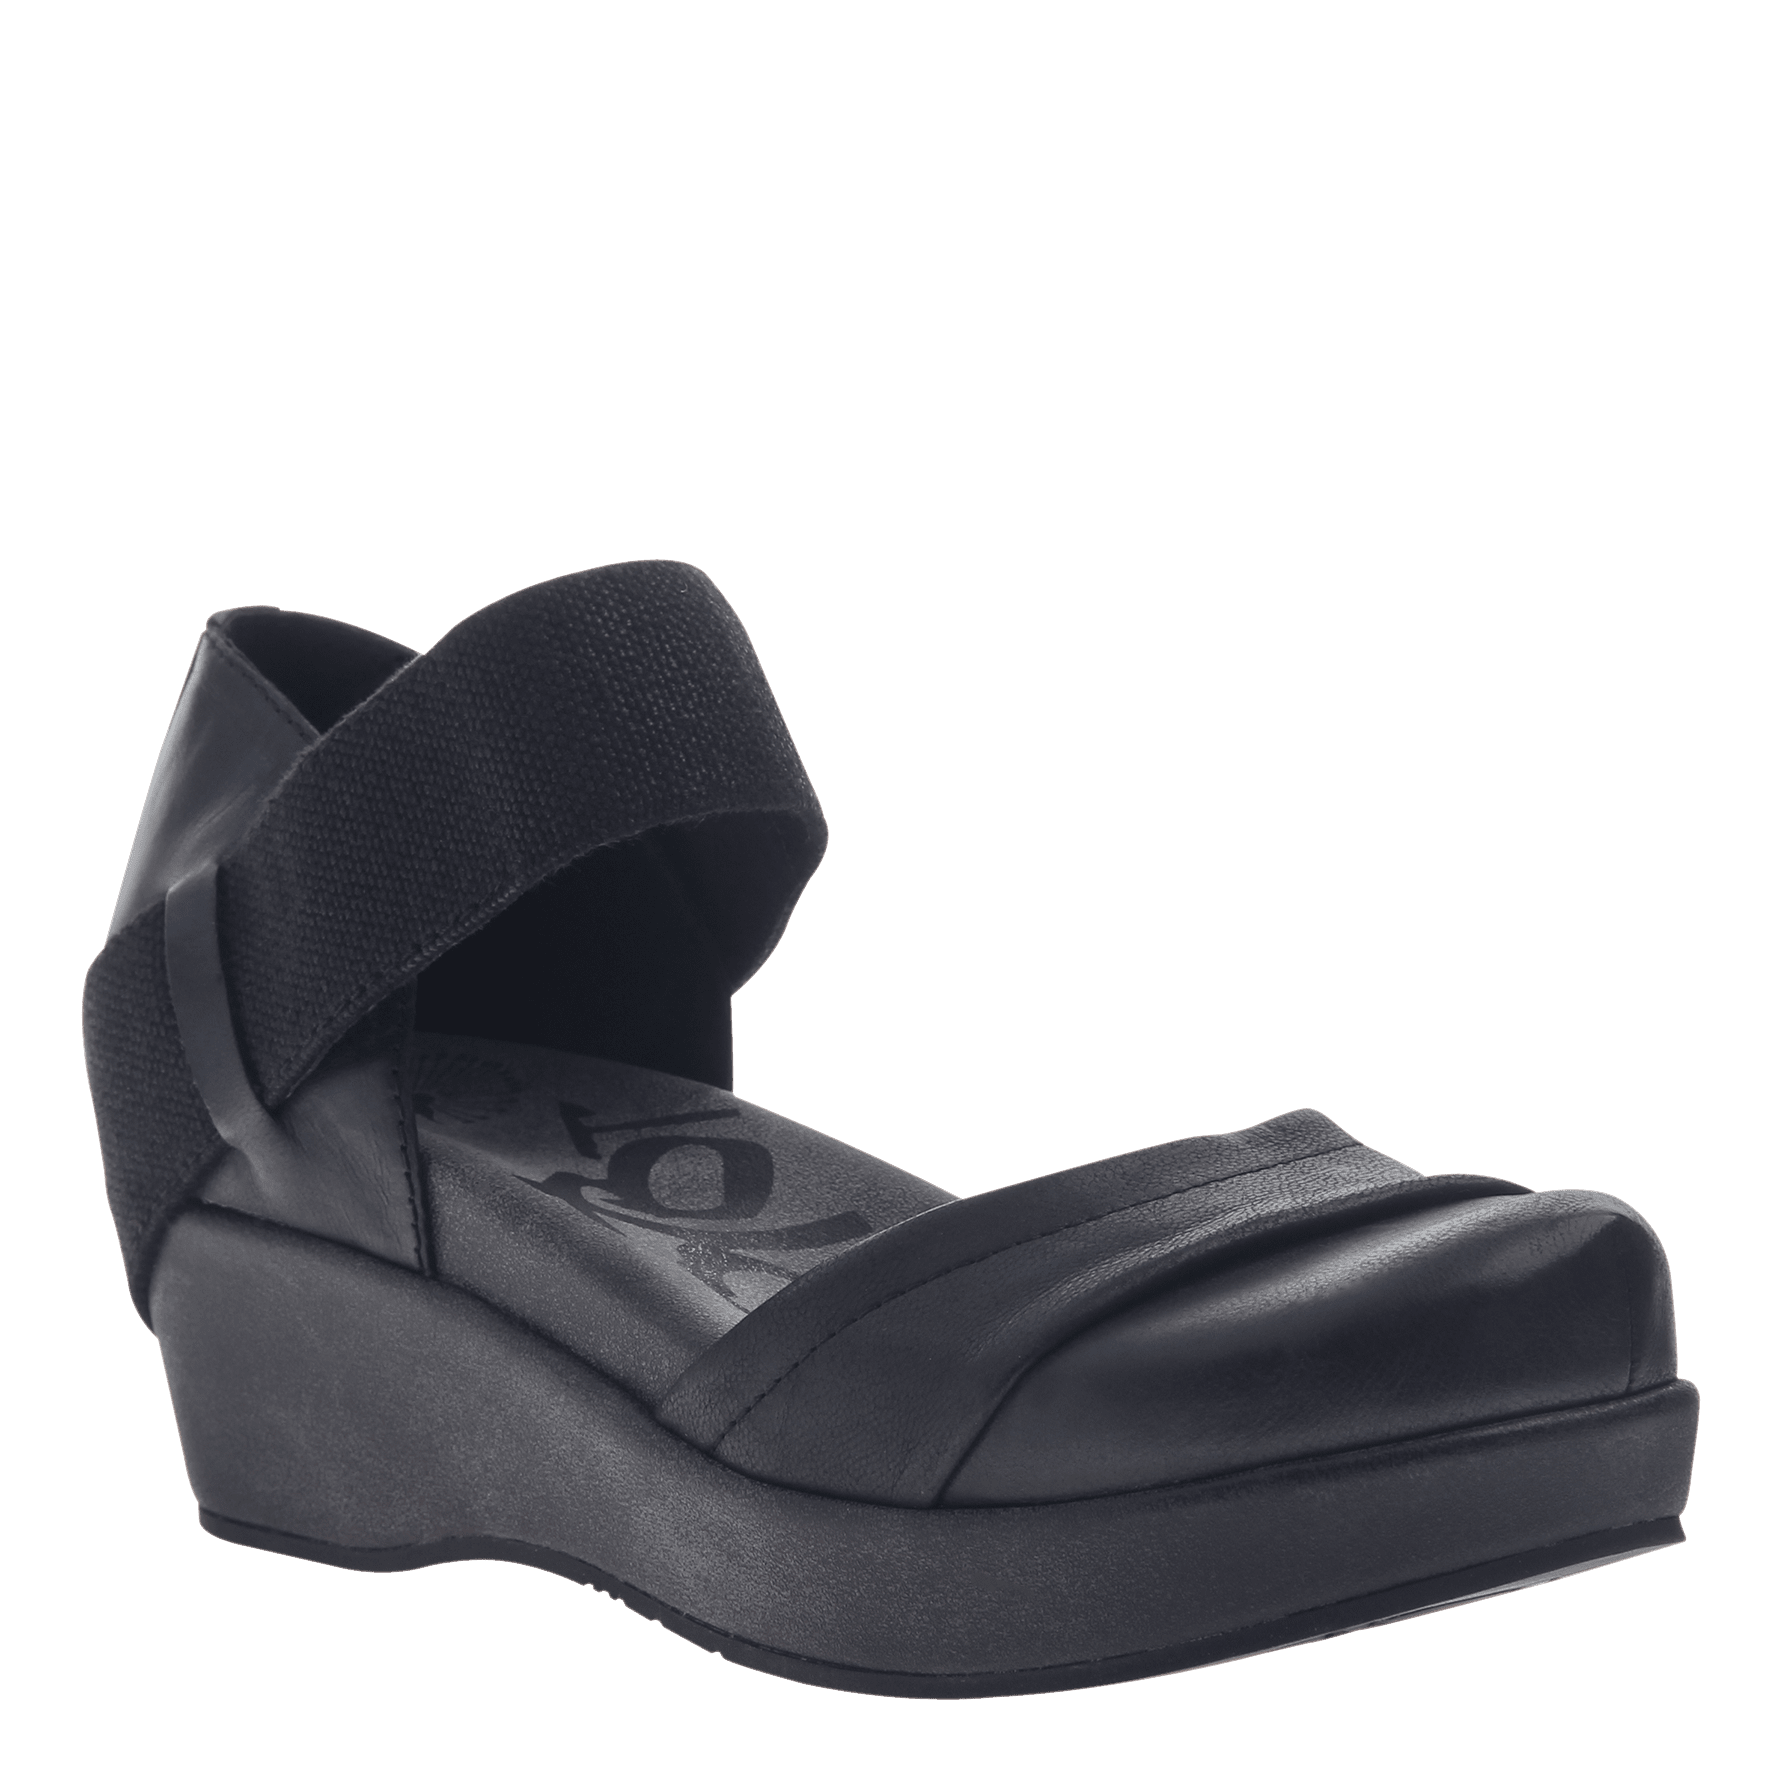 Wander Out in Black Closed Toe Wedges